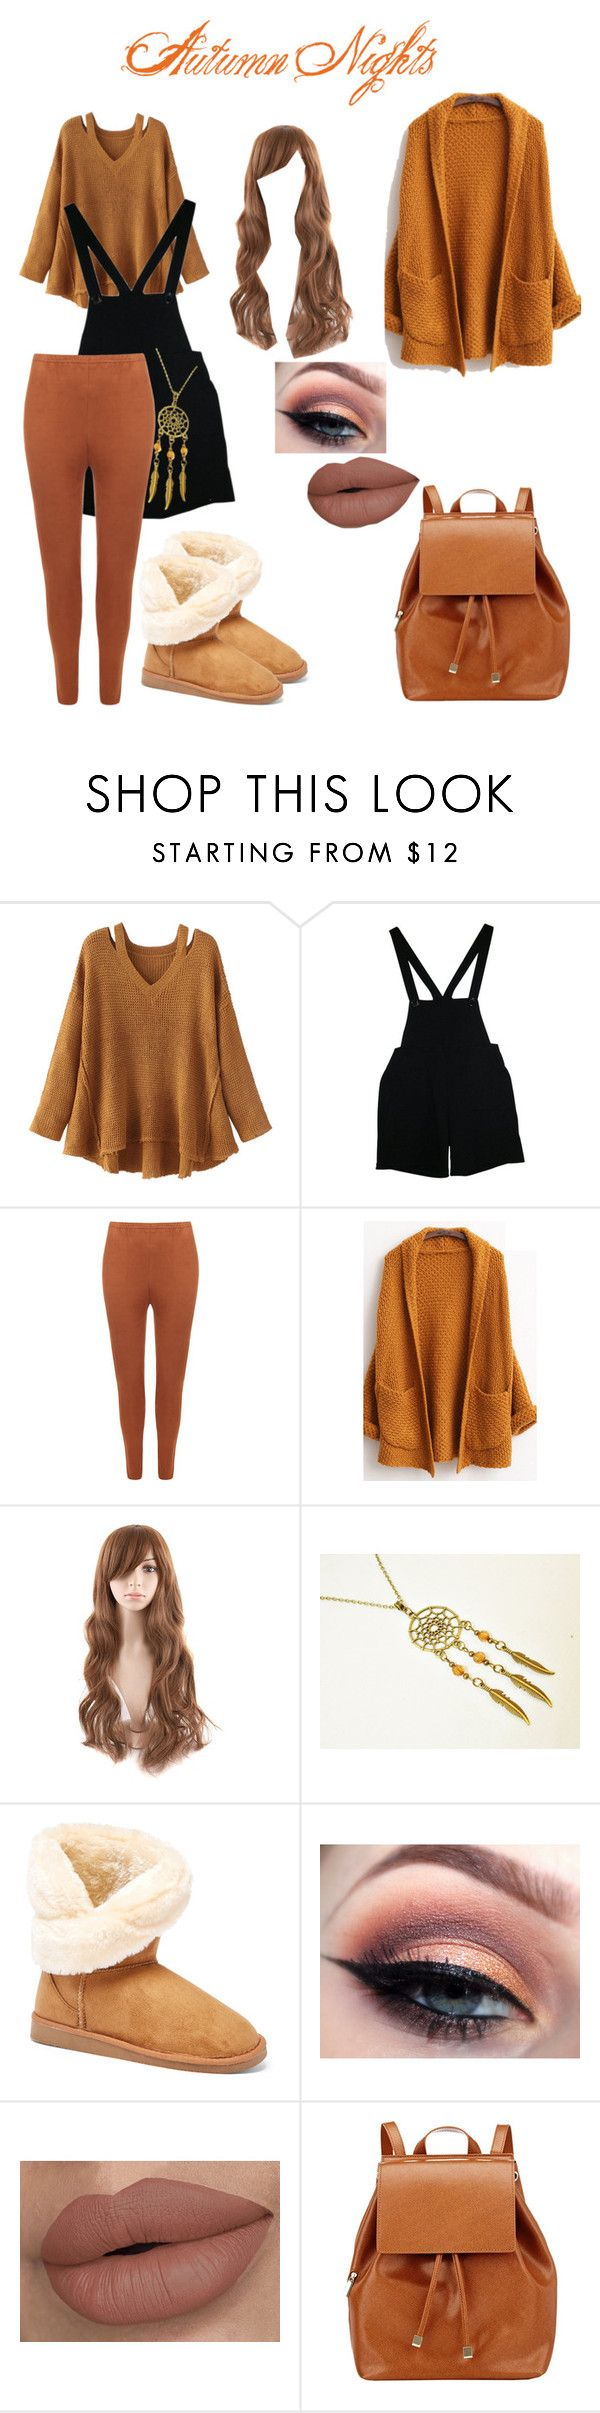 """""""Autumn Nights"""" by just-a-friendly-ghost ❤ liked on Polyvore featuring WithChic, American Apparel, WearAll, Serene Island and Barneys New York"""